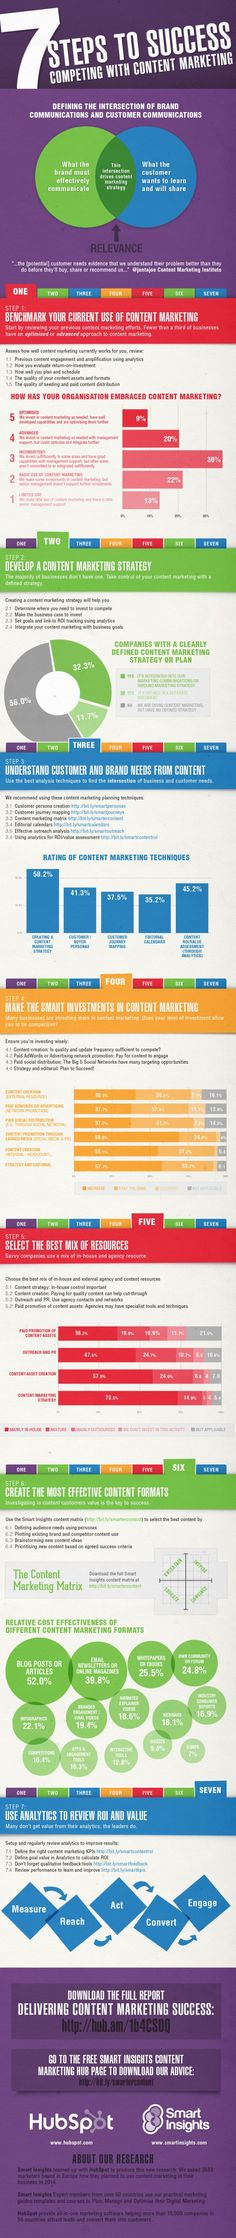 Winning With Content Marketing: 7 Key Ingredients (Infographic) image managing content marketing infographic